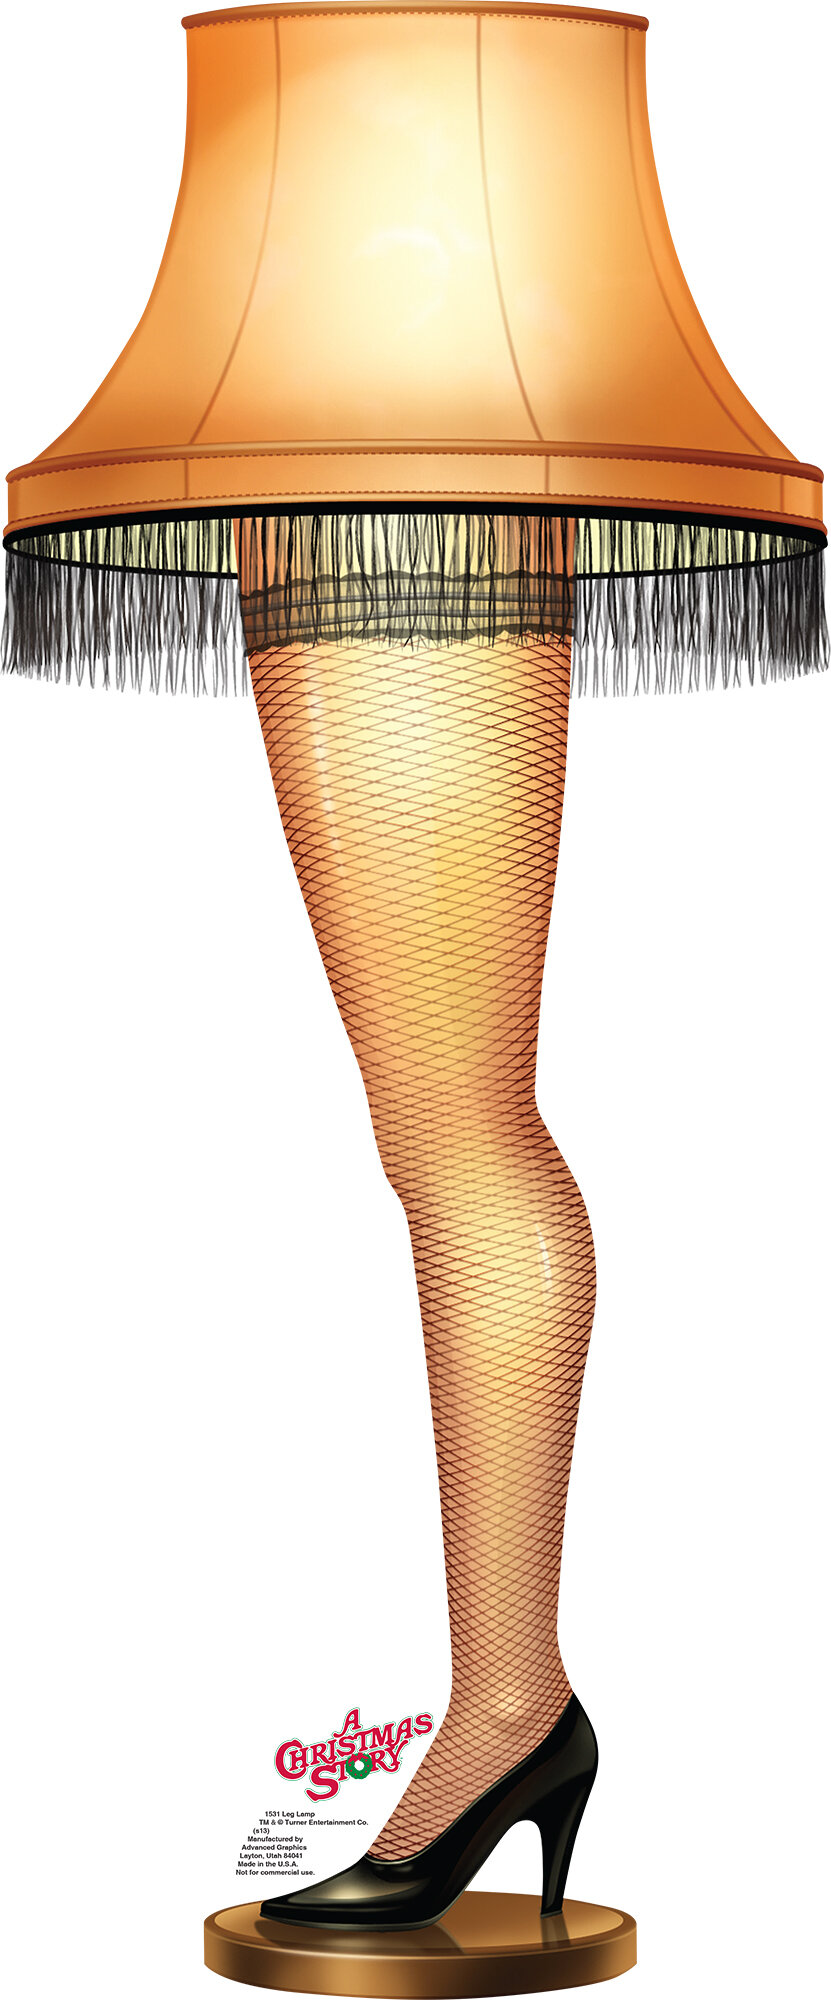 Advanced Graphics Leg Lamp - A Christmas Story Cardboard Stand-Up ...